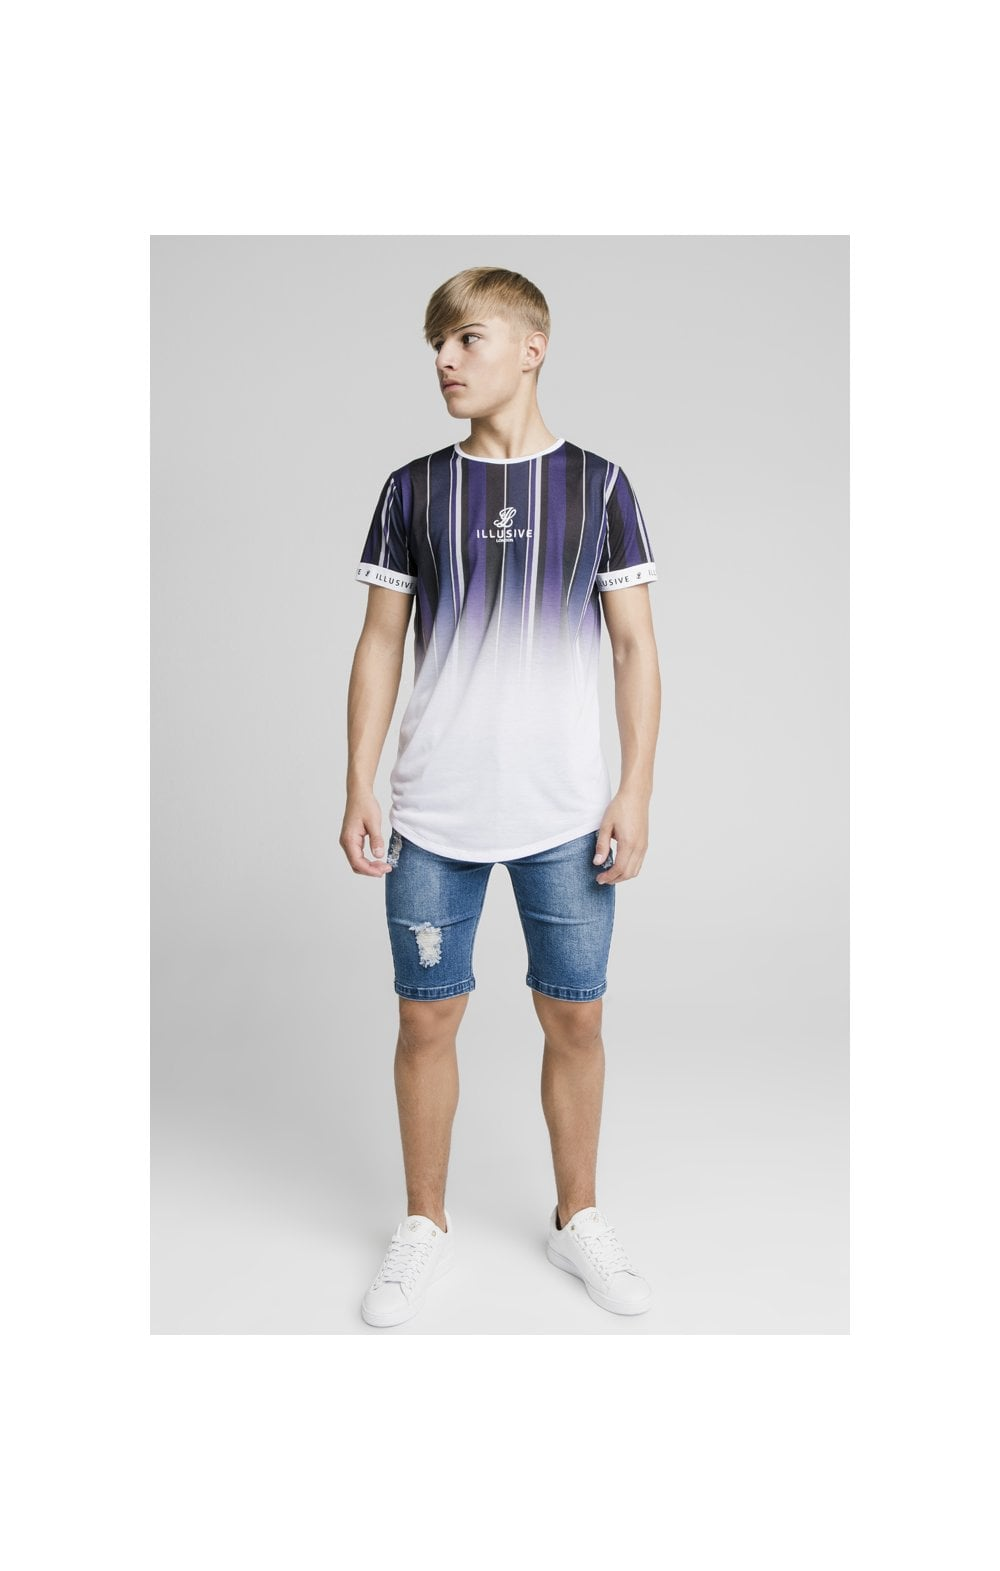 Load image into Gallery viewer, Illusive London Fade Stripe Tech Tee - Navy, Purple, Grey & White (4)